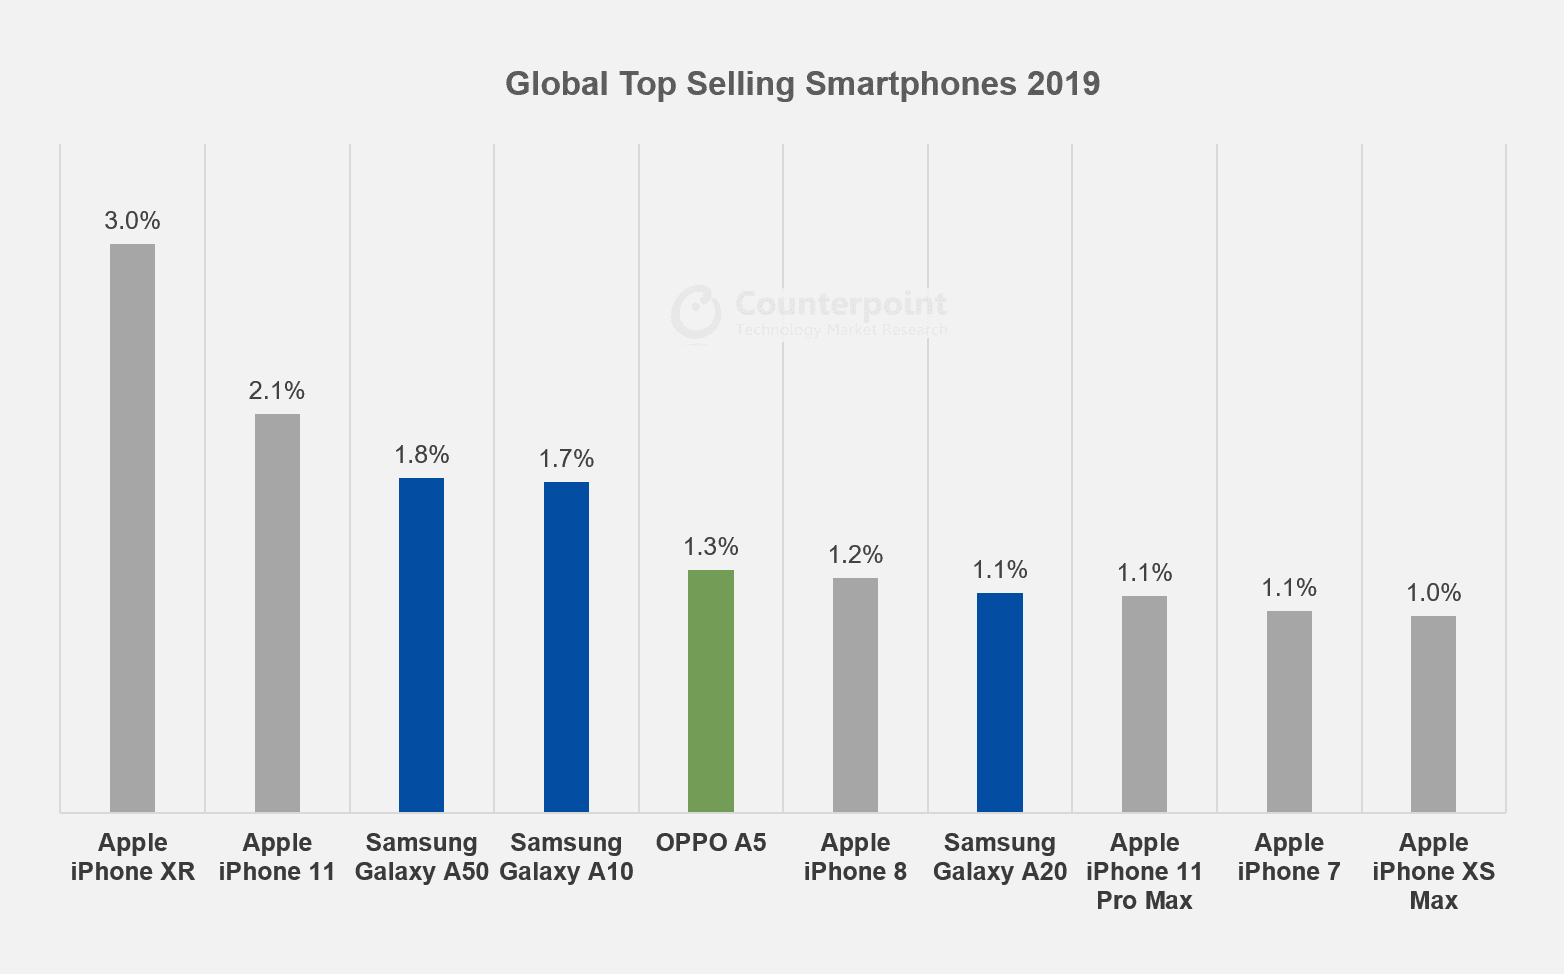 Apple iPhone XR, iPhone 11 and Samsung Galaxy A50 ranked as the most successful smartphone of 2019